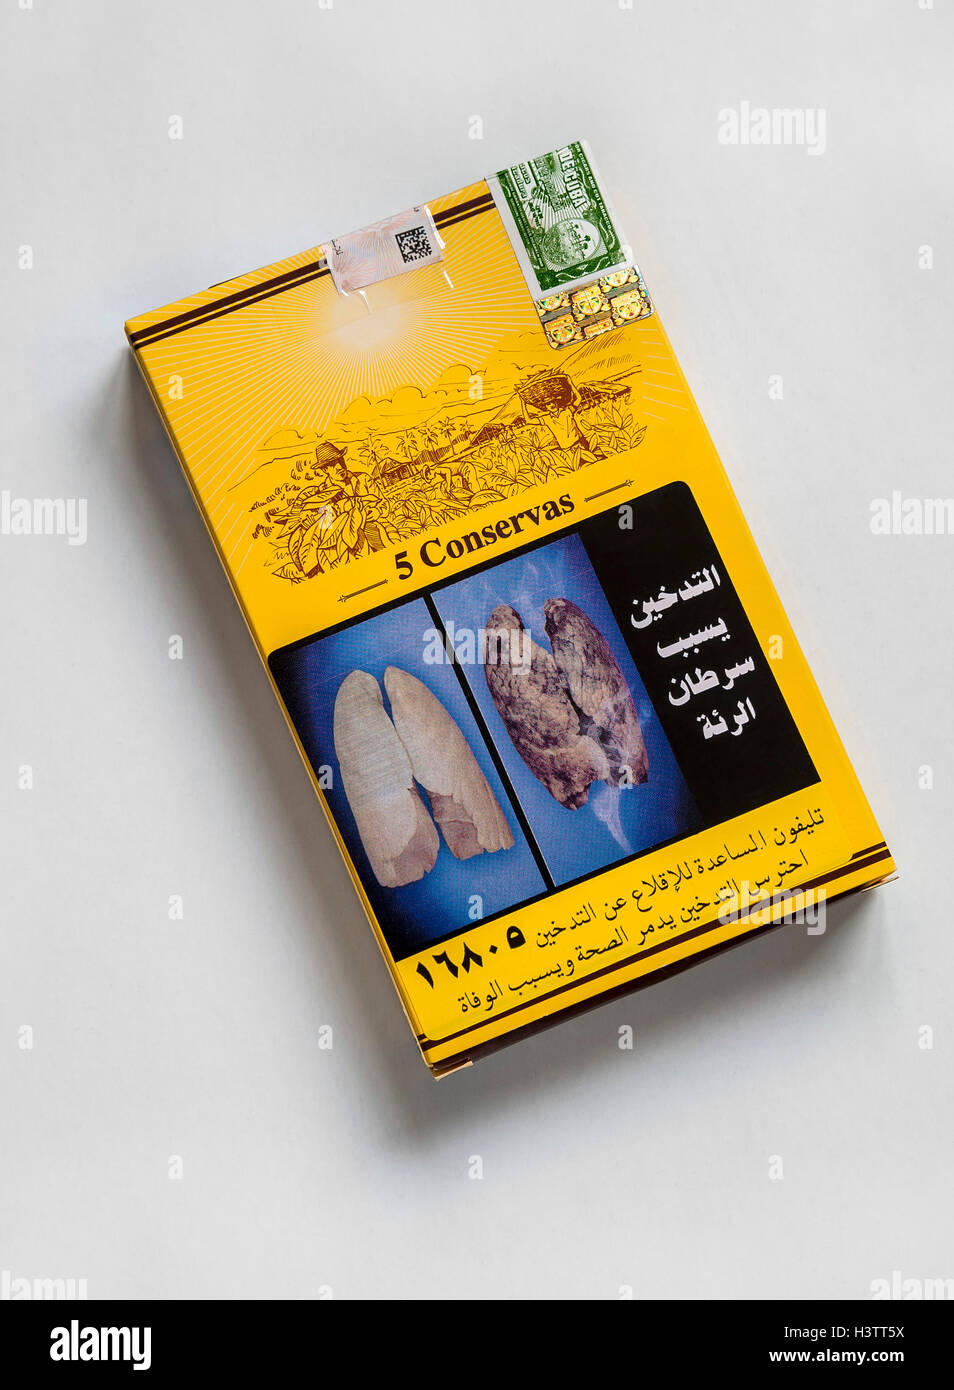 Cuban cigars in Egyptian cigar box with shocking images - Stock Image